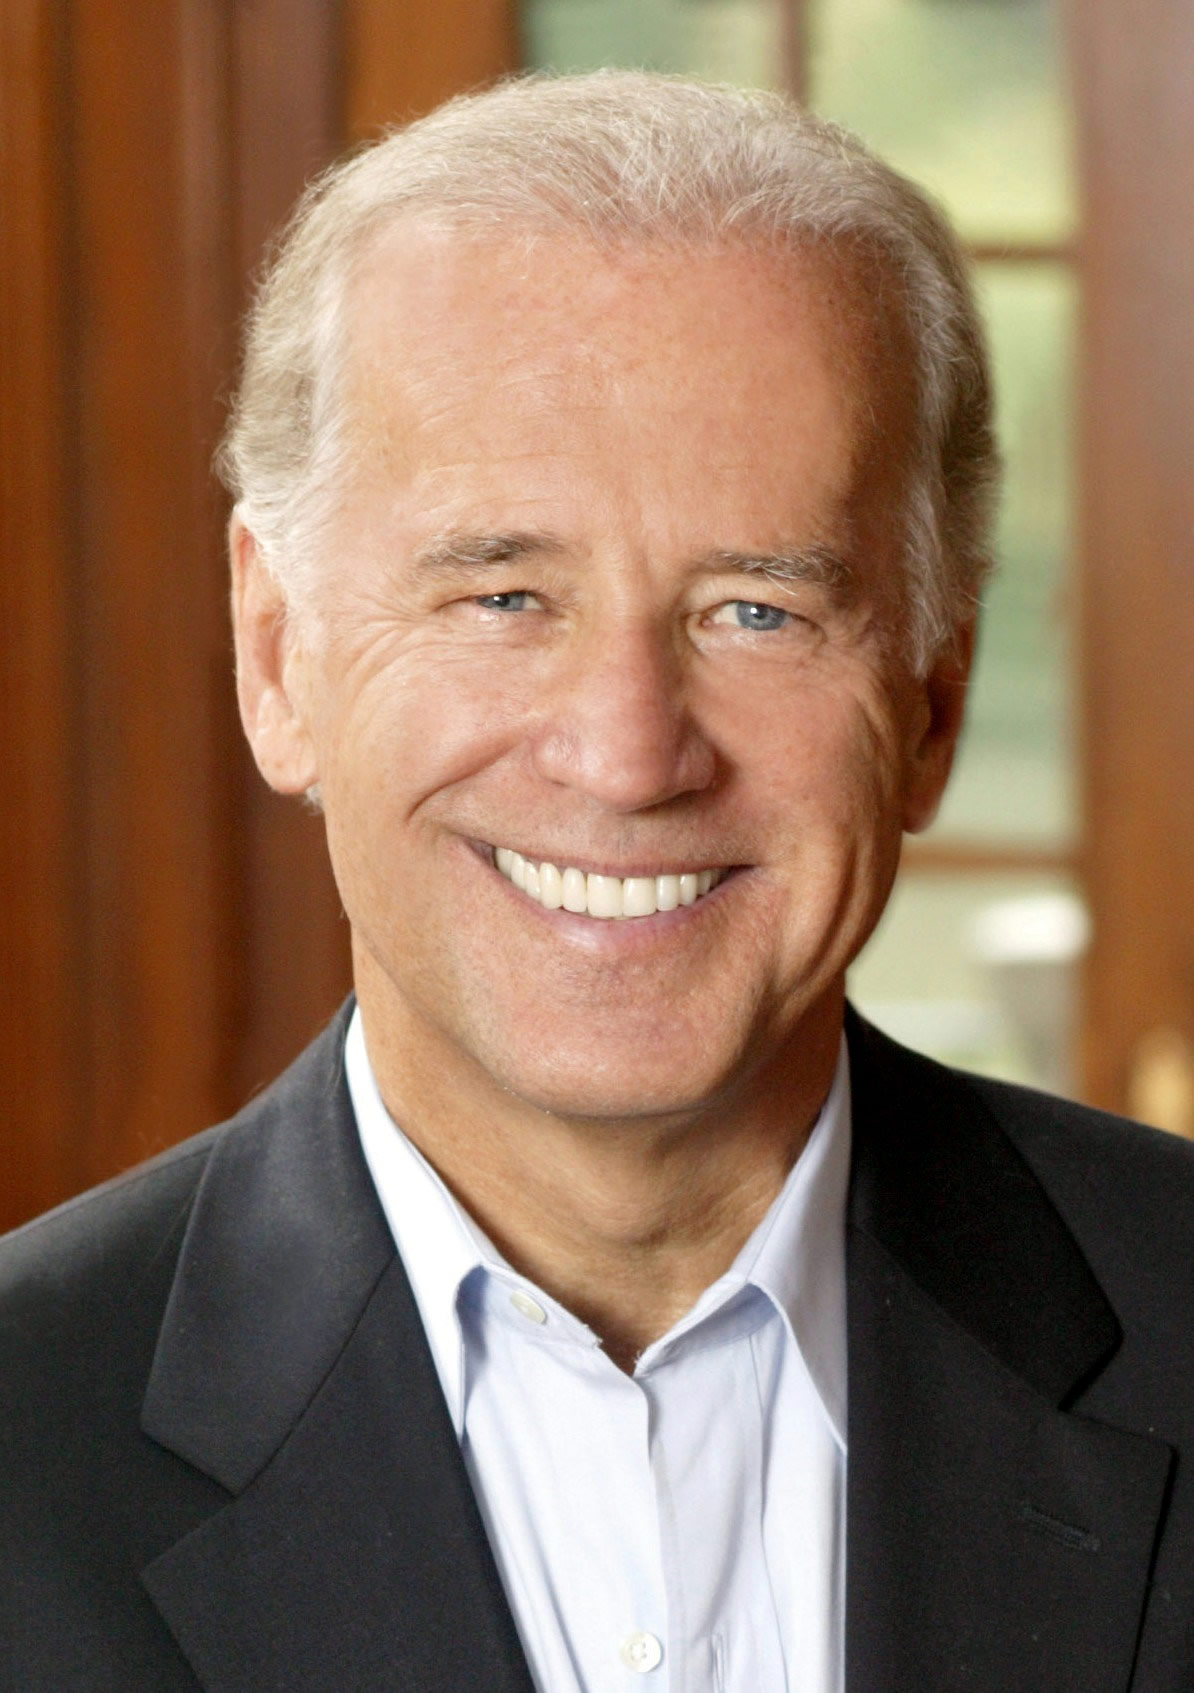 File:Joe Biden, official photo portrait 2-cropped.jpg - Wikimedia ...